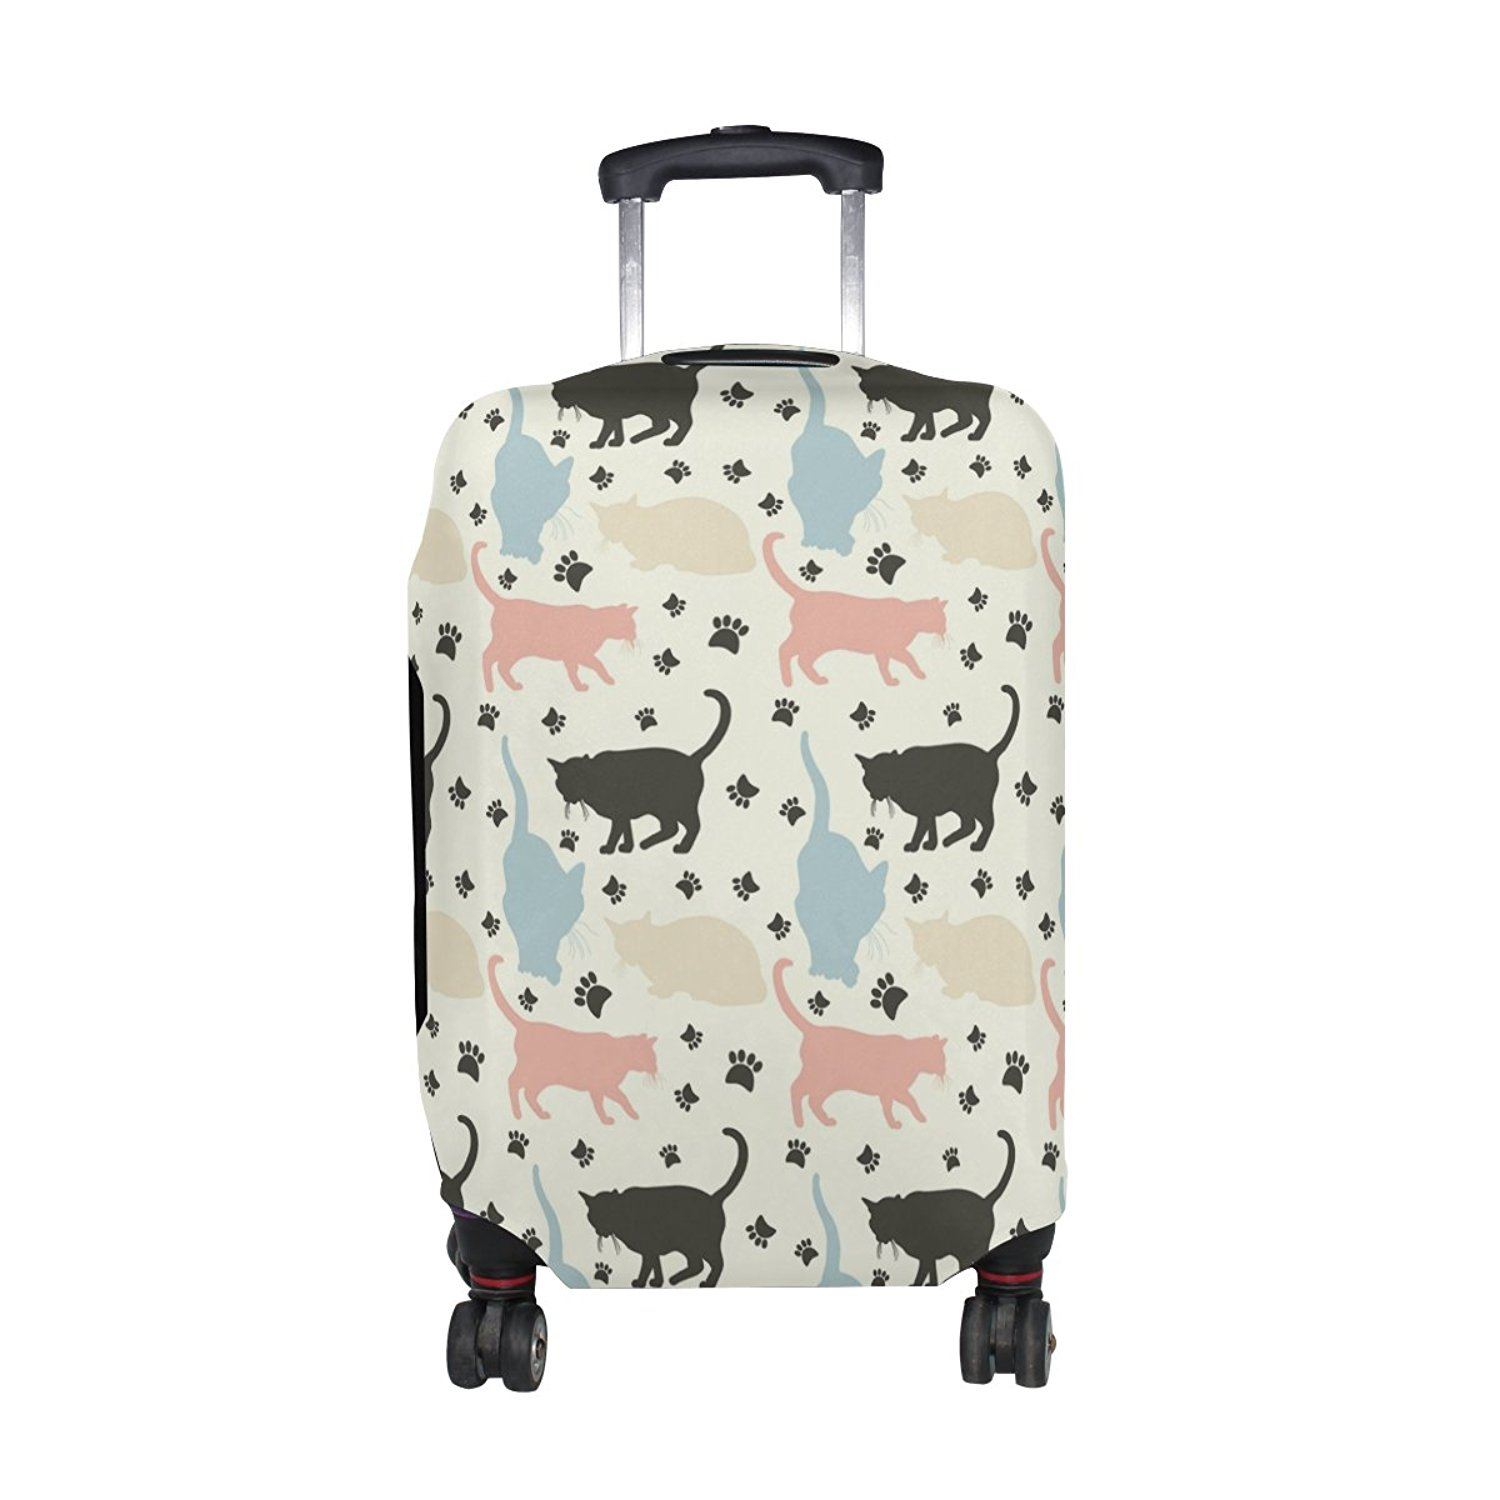 OREZI Luggage Protector White And Orange Travel Luggage Elastic Cover Suitcase Washable and Durable Anti-Scratch Stretchy Case Cover Fits 18-32 Inches